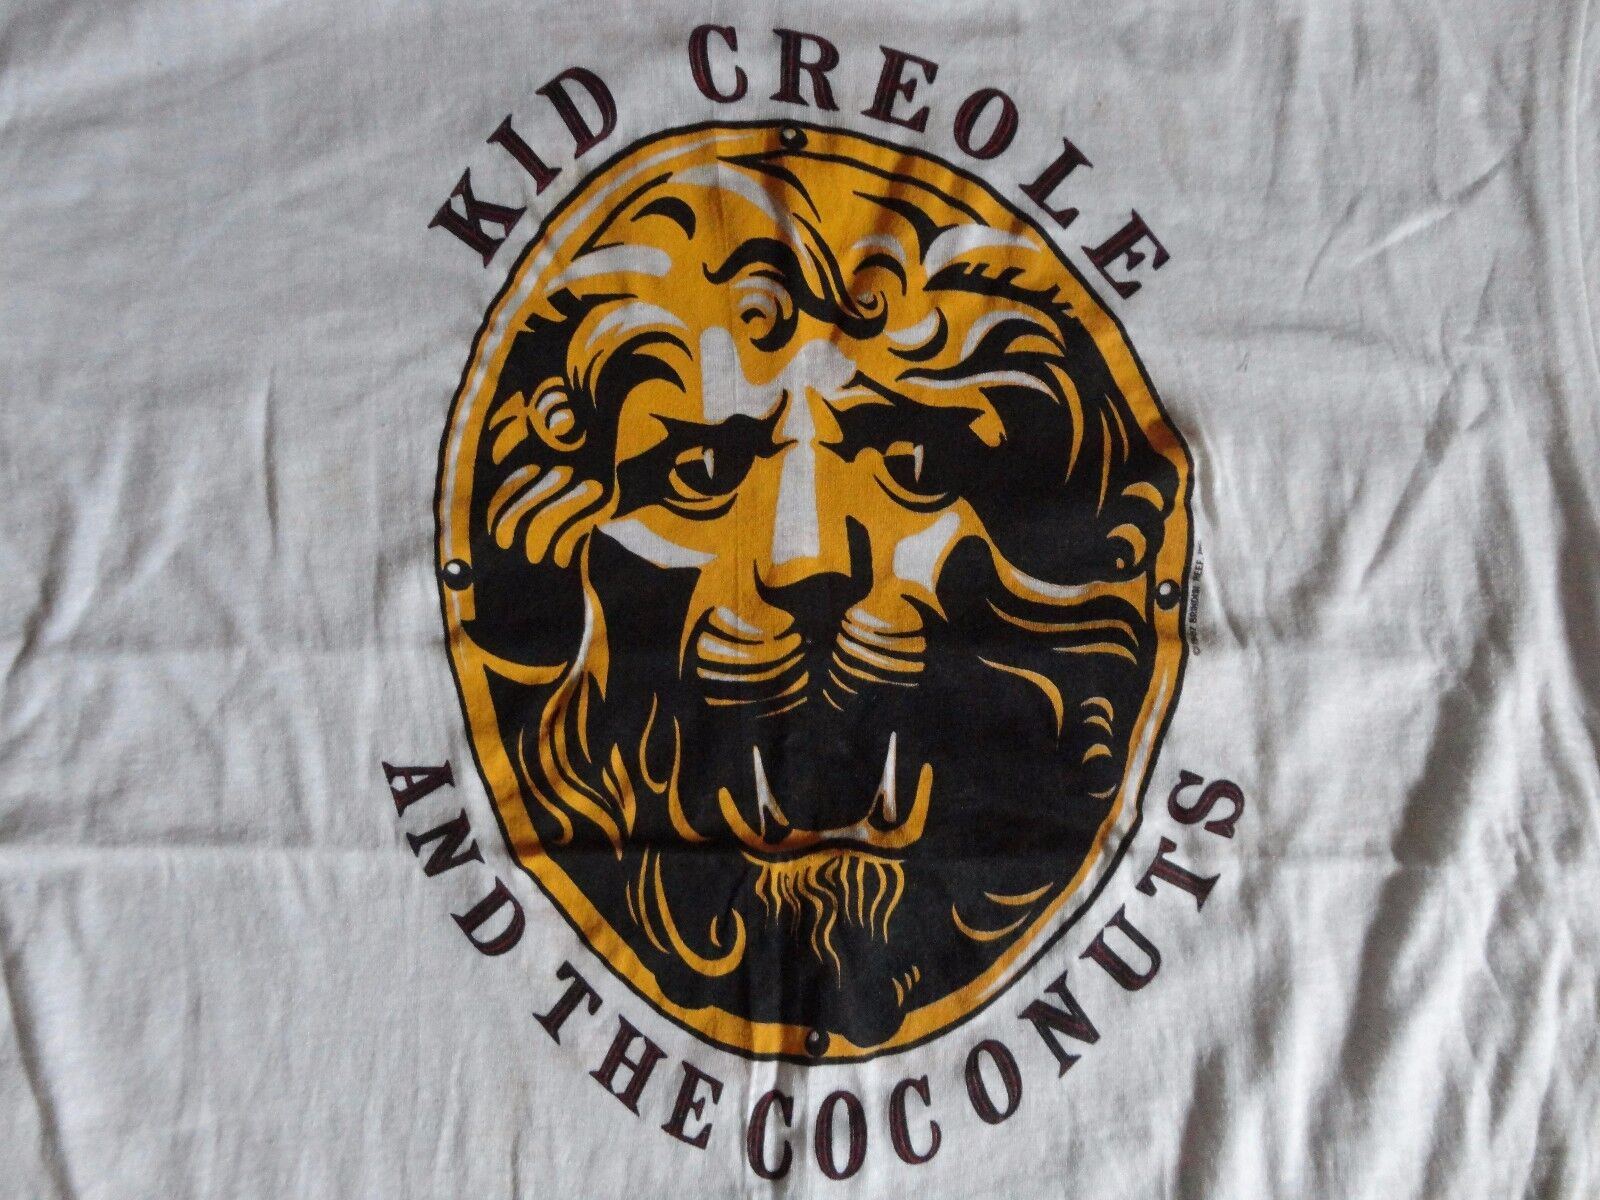 RARE Vintage 80's Kid Creole and the Coconuts Seen the Woods tour TShirt  Fits L